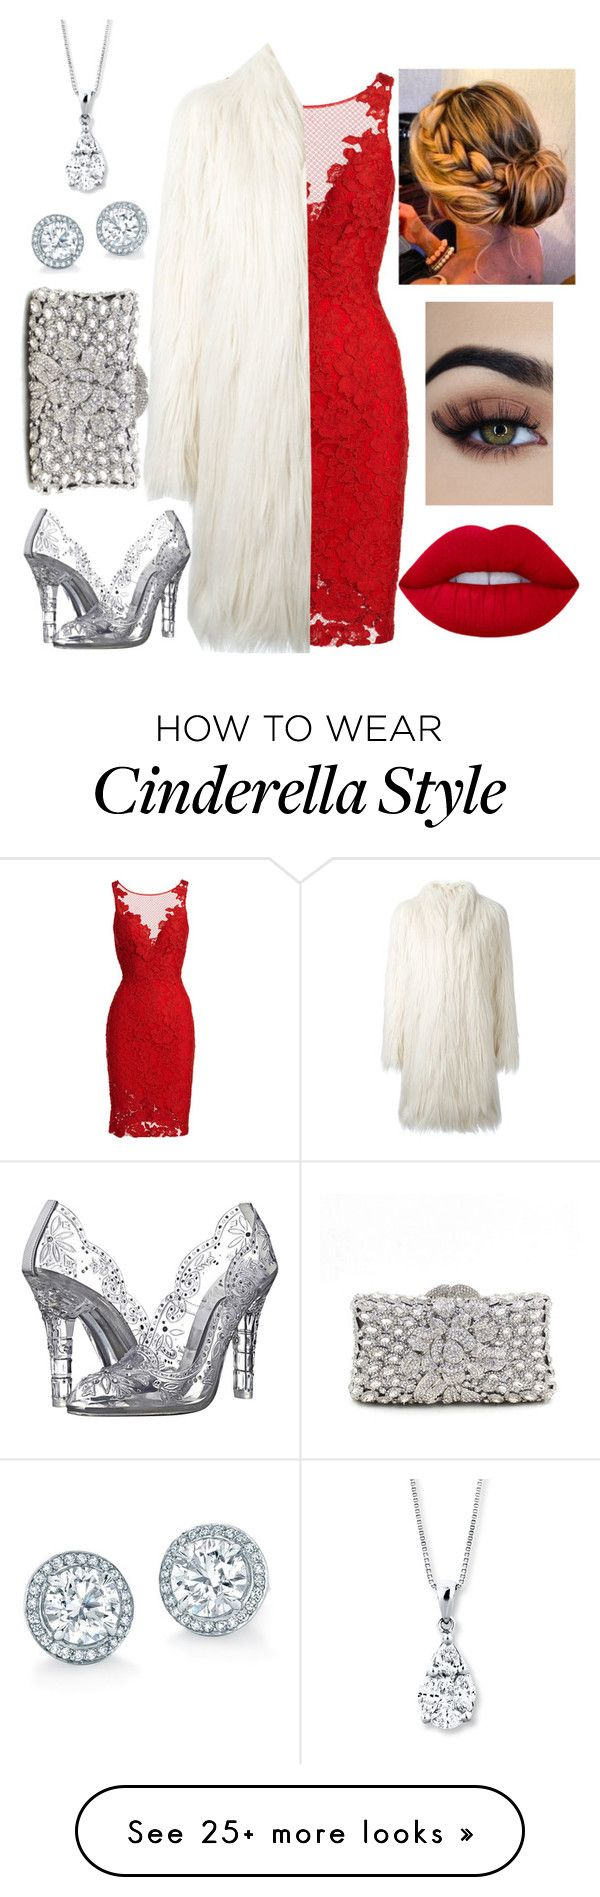 """""""ROMANTIC WINTER WEDDING"""" by evitatrii on Polyvore featuring ML Monique Lhuillier, Giamba and Dolce&Gabbana"""